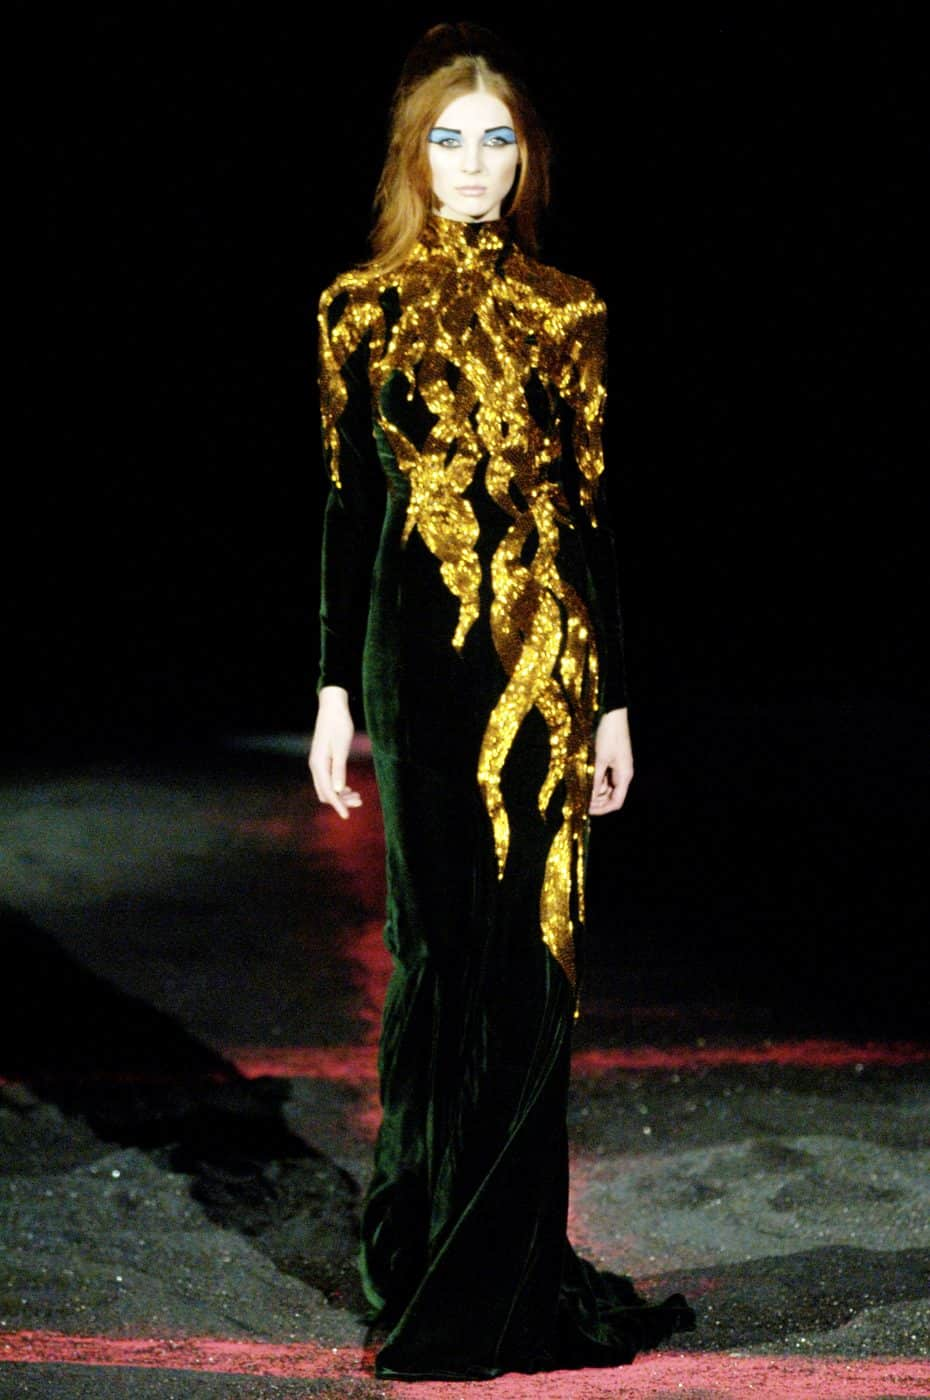 An Alexander McQueen gown from his Autumn/Winter 2007 collection, offered by Marilyn Glass